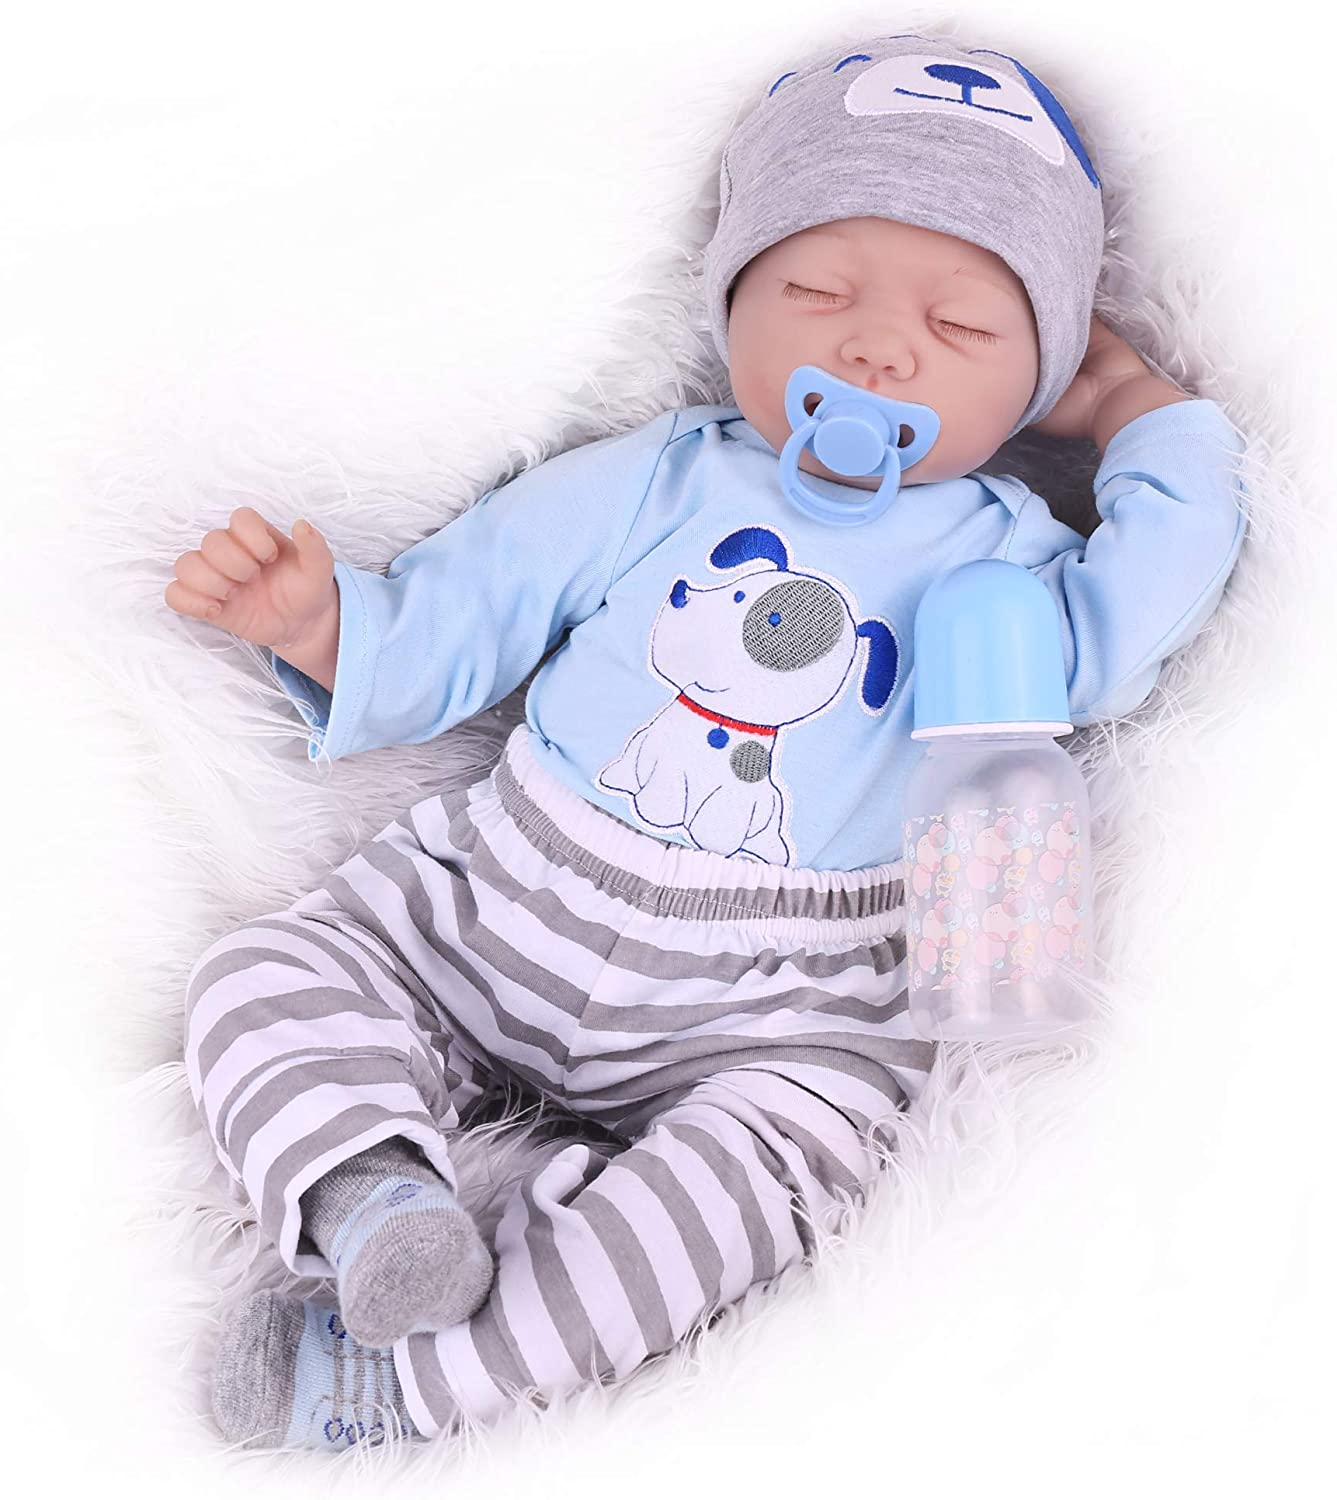 Cute Realistic Lifelike Reborn Baby Doll with Accessories for Children Age 3+ 22 Inch Reborn Baby Girl CHAREX Sleeping Reborn Baby Doll